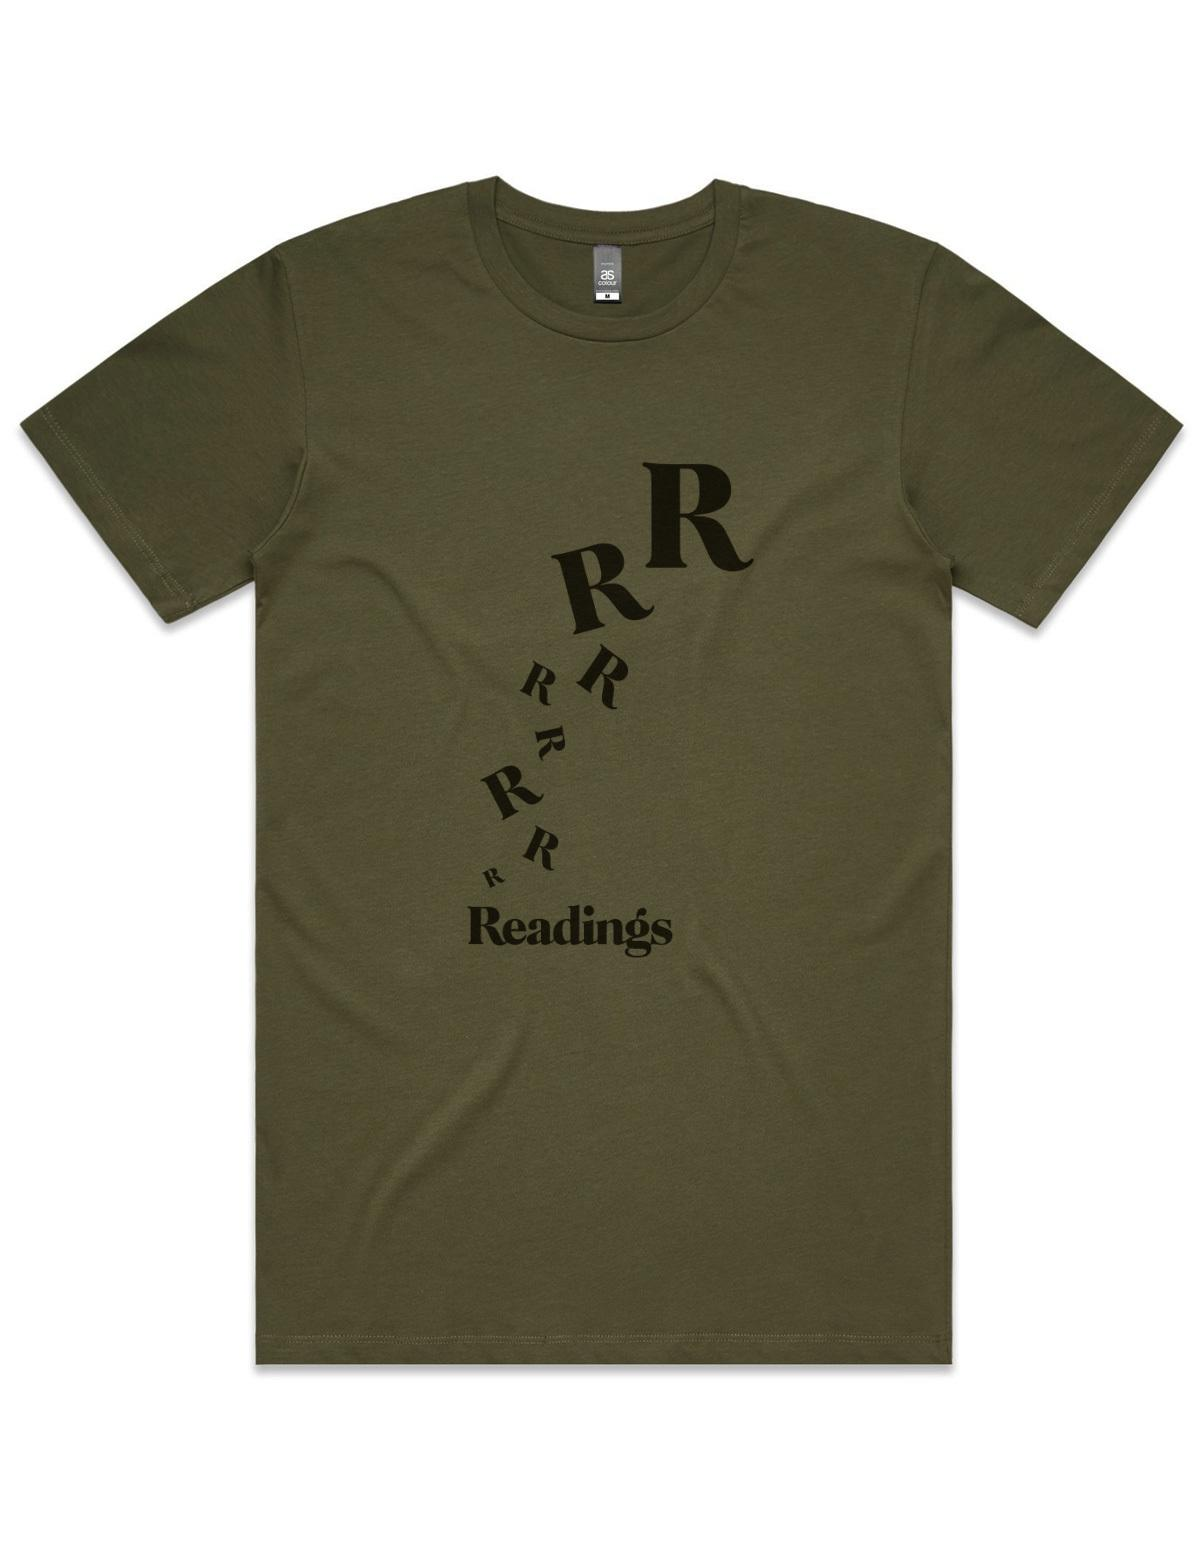 Flying Rs T-Shirt Army Green (Small, Unisex)